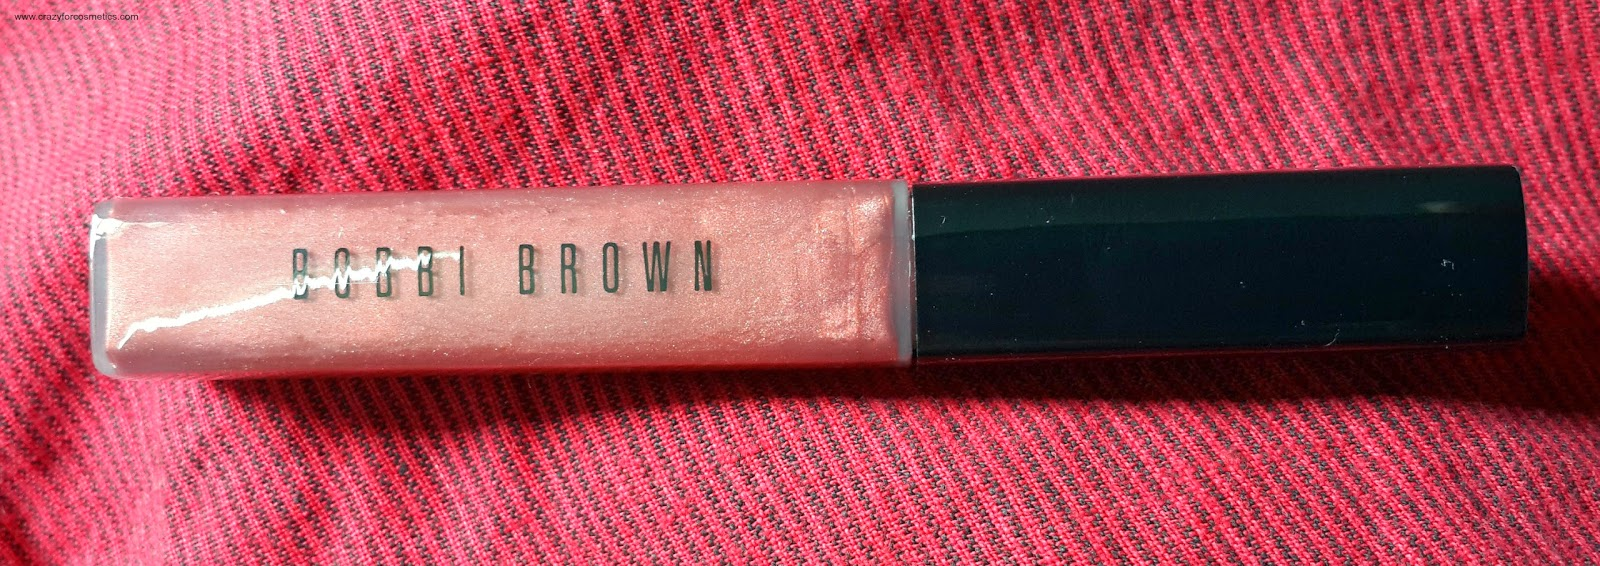 bobbi brown shimmer lip gloss Ruby Sugar review-bobbi brown shimmer lip gloss in India-bobbi brown in india